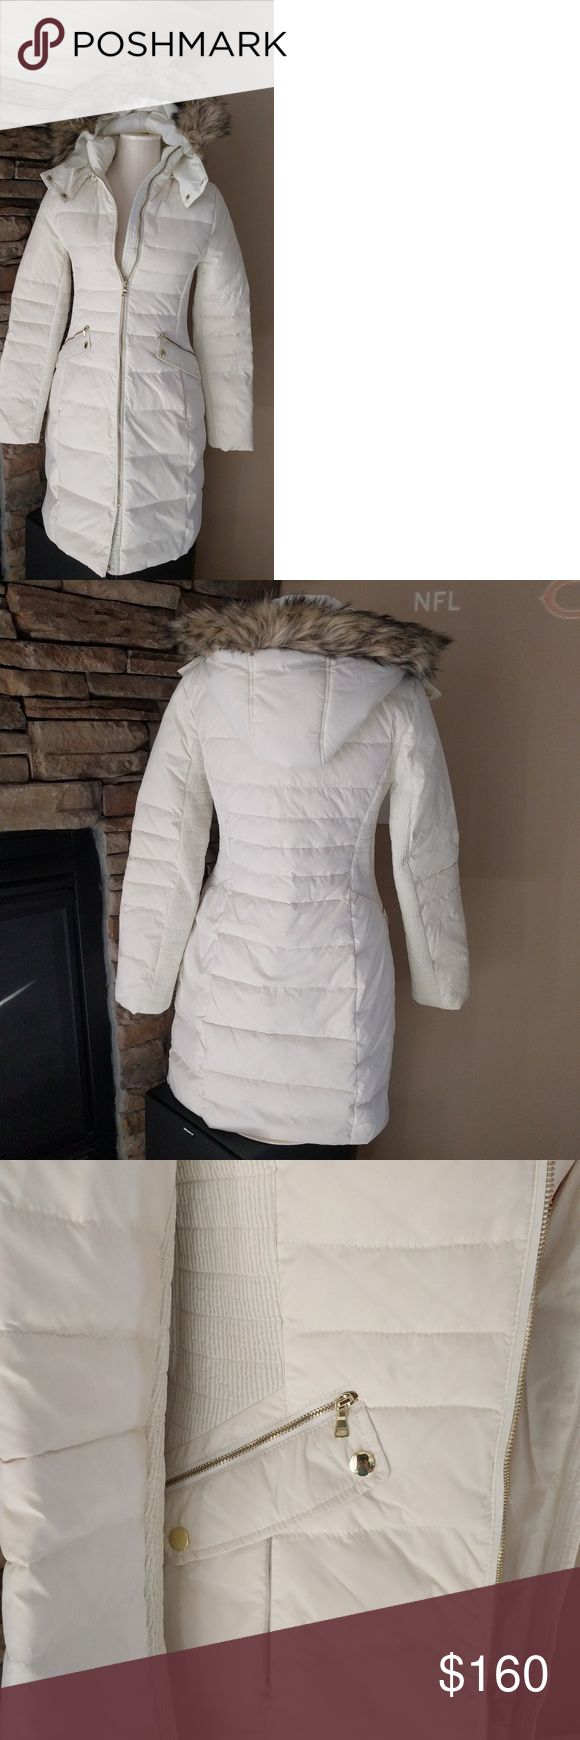 ❄️❄️HP 2/14 Gorgeous NWT SNOW coat from Express Size small, brand new with tags. Gorgeous, perfect condition snow white coat from Express. Gold details buttons and zippers on the pockets. Faux fur trim on detachable hood. Size Small is 2-4 equivalent. Thank you for shipping my closet! Express Jackets & Coats